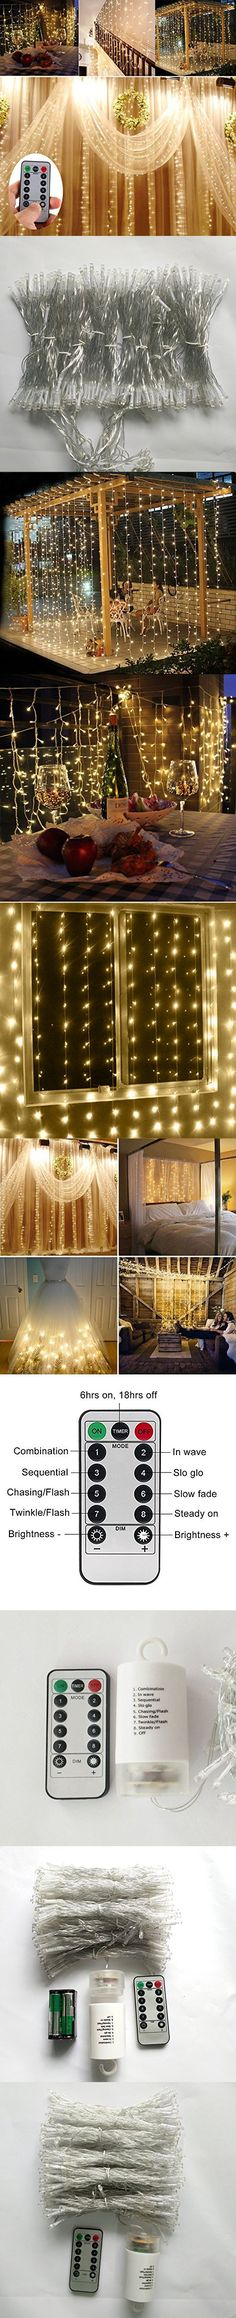 Battery Operated 300 LED Curtain String lights w/ Remote & Timer, Outdoor Curtain Icicle Wall Lights For Wedding Backdrops, Christmas, Holiday, Camping Decoration (9.89.8ft, Dimmable, Warm White)